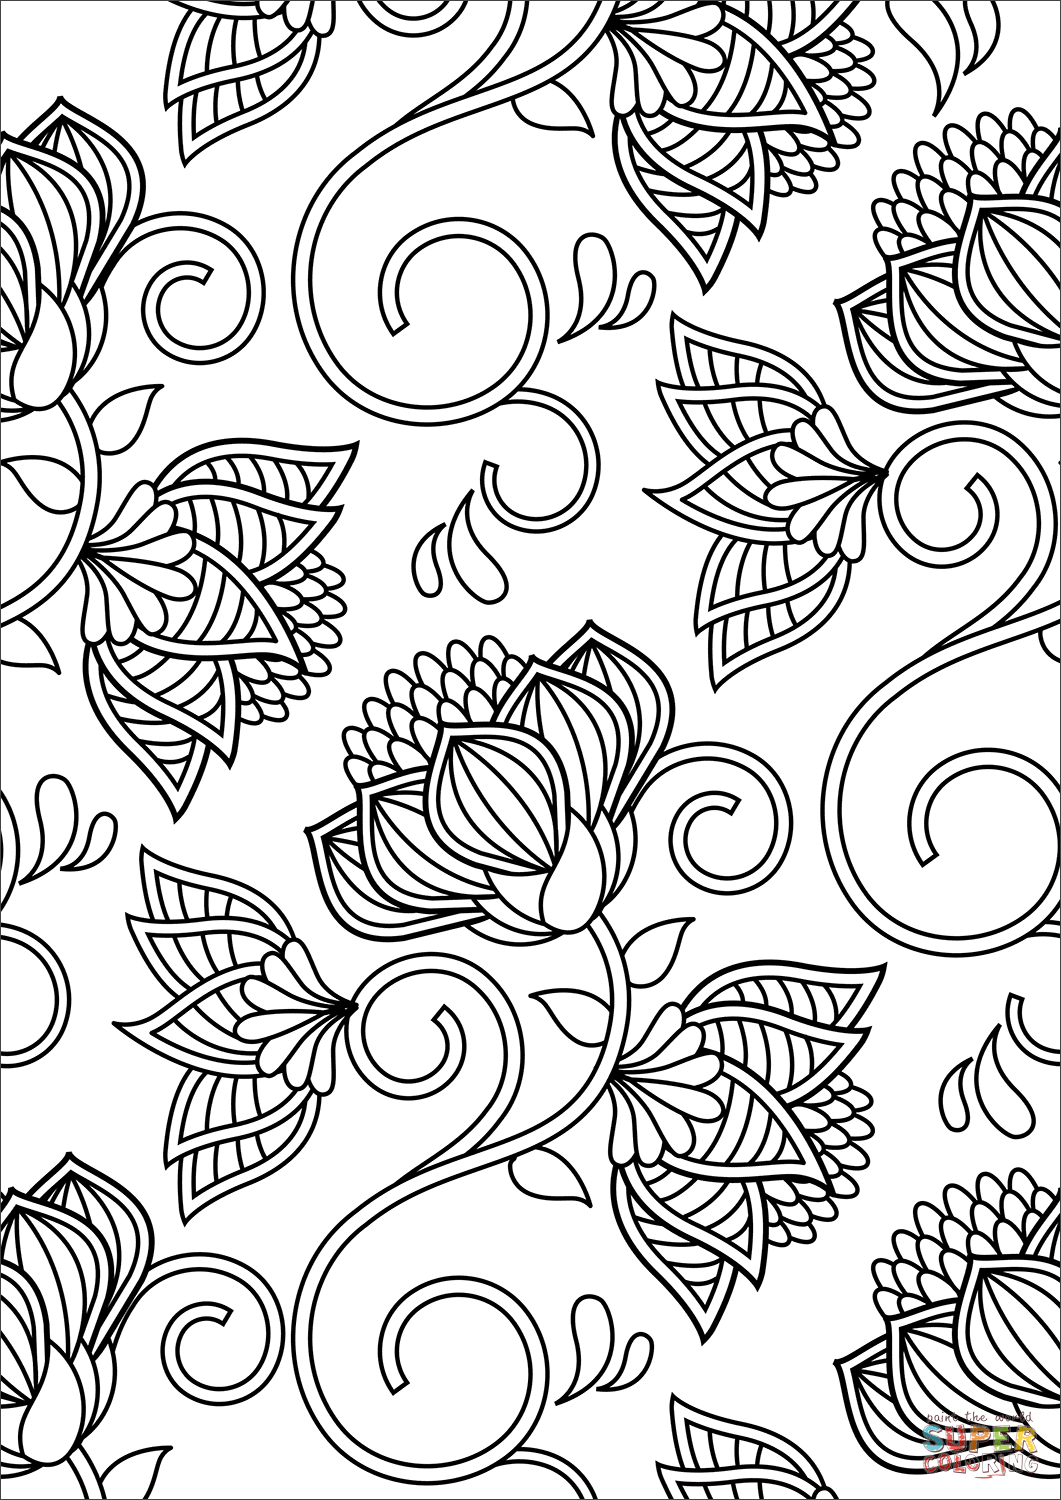 printable coloring designs cool design coloring pages getcoloringpagescom designs coloring printable